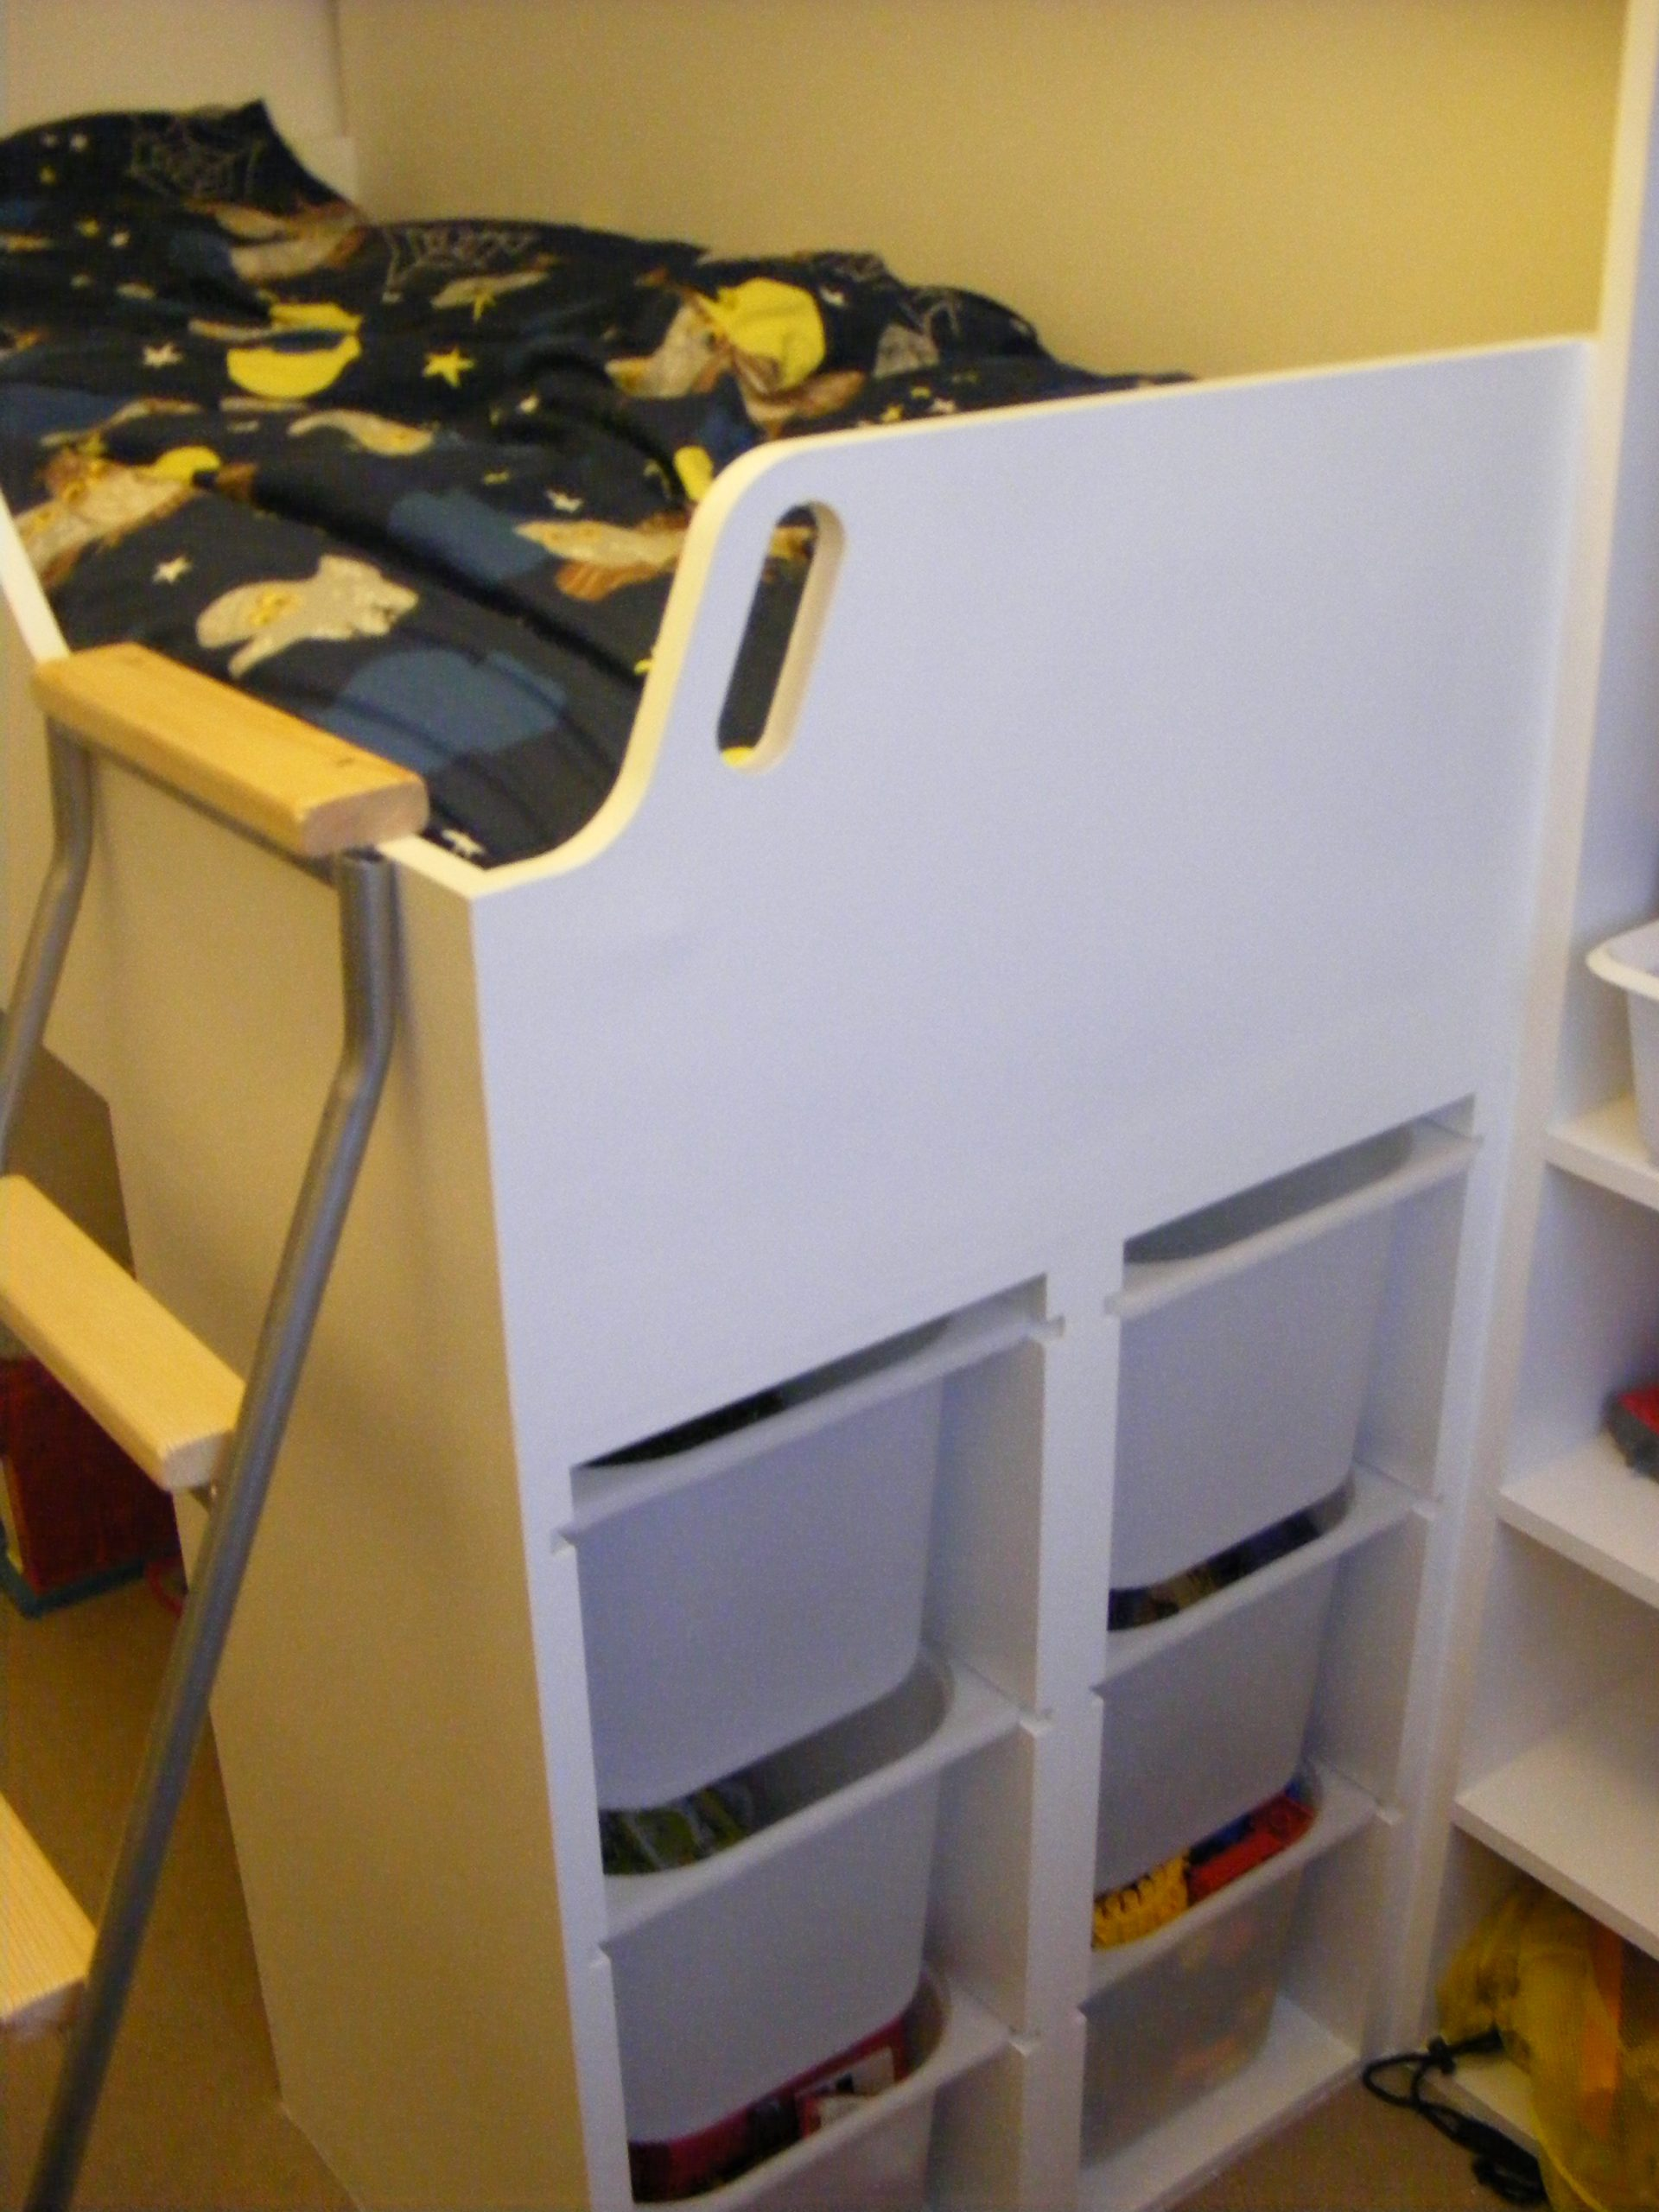 Childs bed over staircase (1)